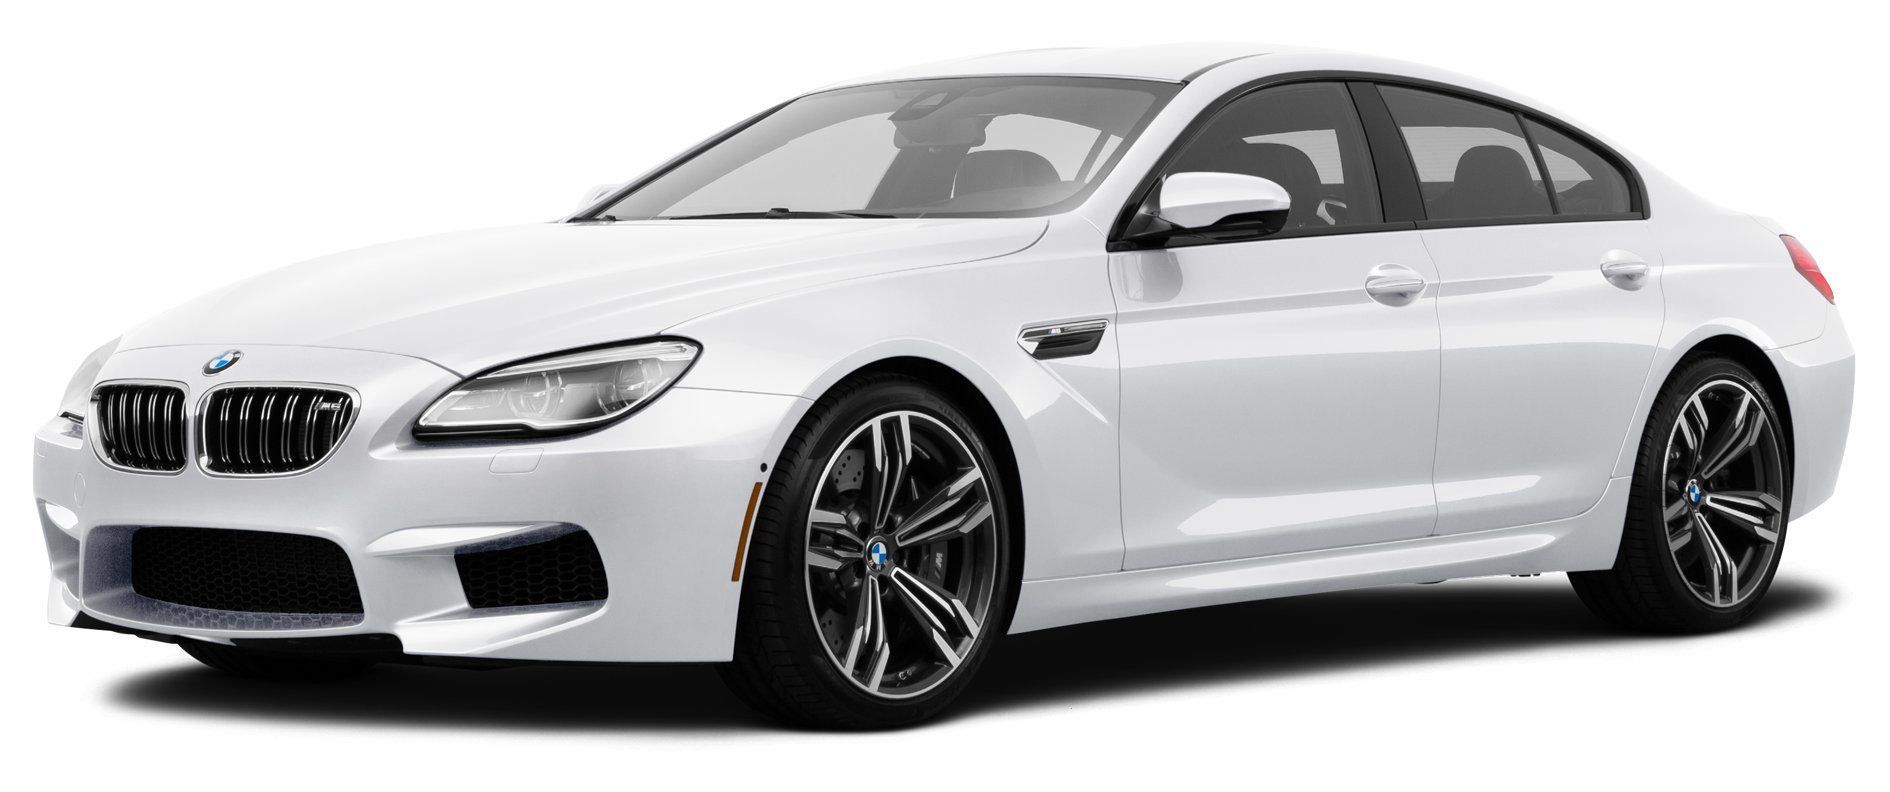 2017 Bmw M6 Gran Coupe >> Amazon Com 2017 Bmw M6 Gran Coupe Reviews Images And Specs Vehicles